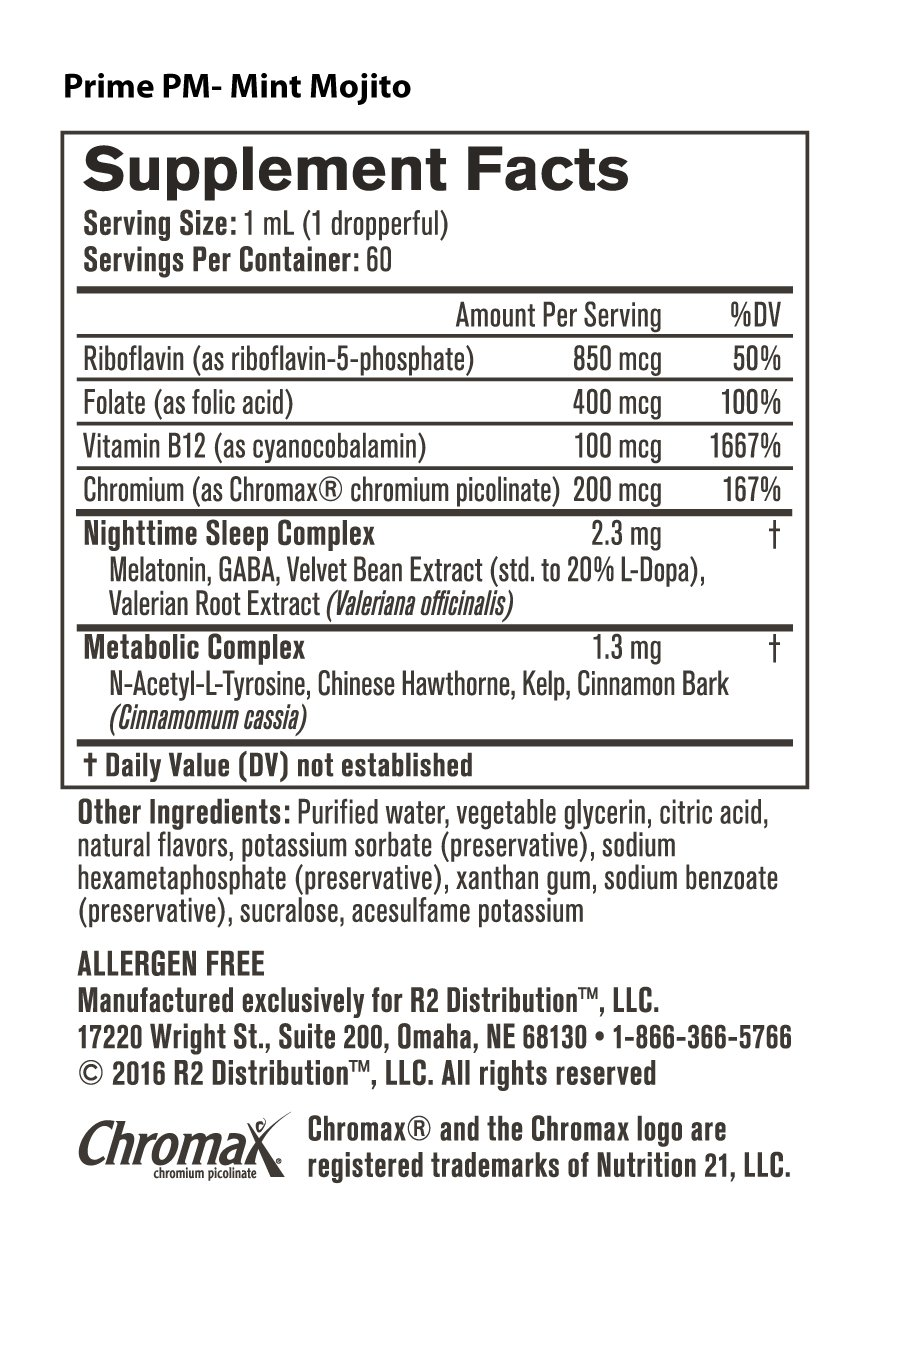 Prime PM -Nutrition Facts